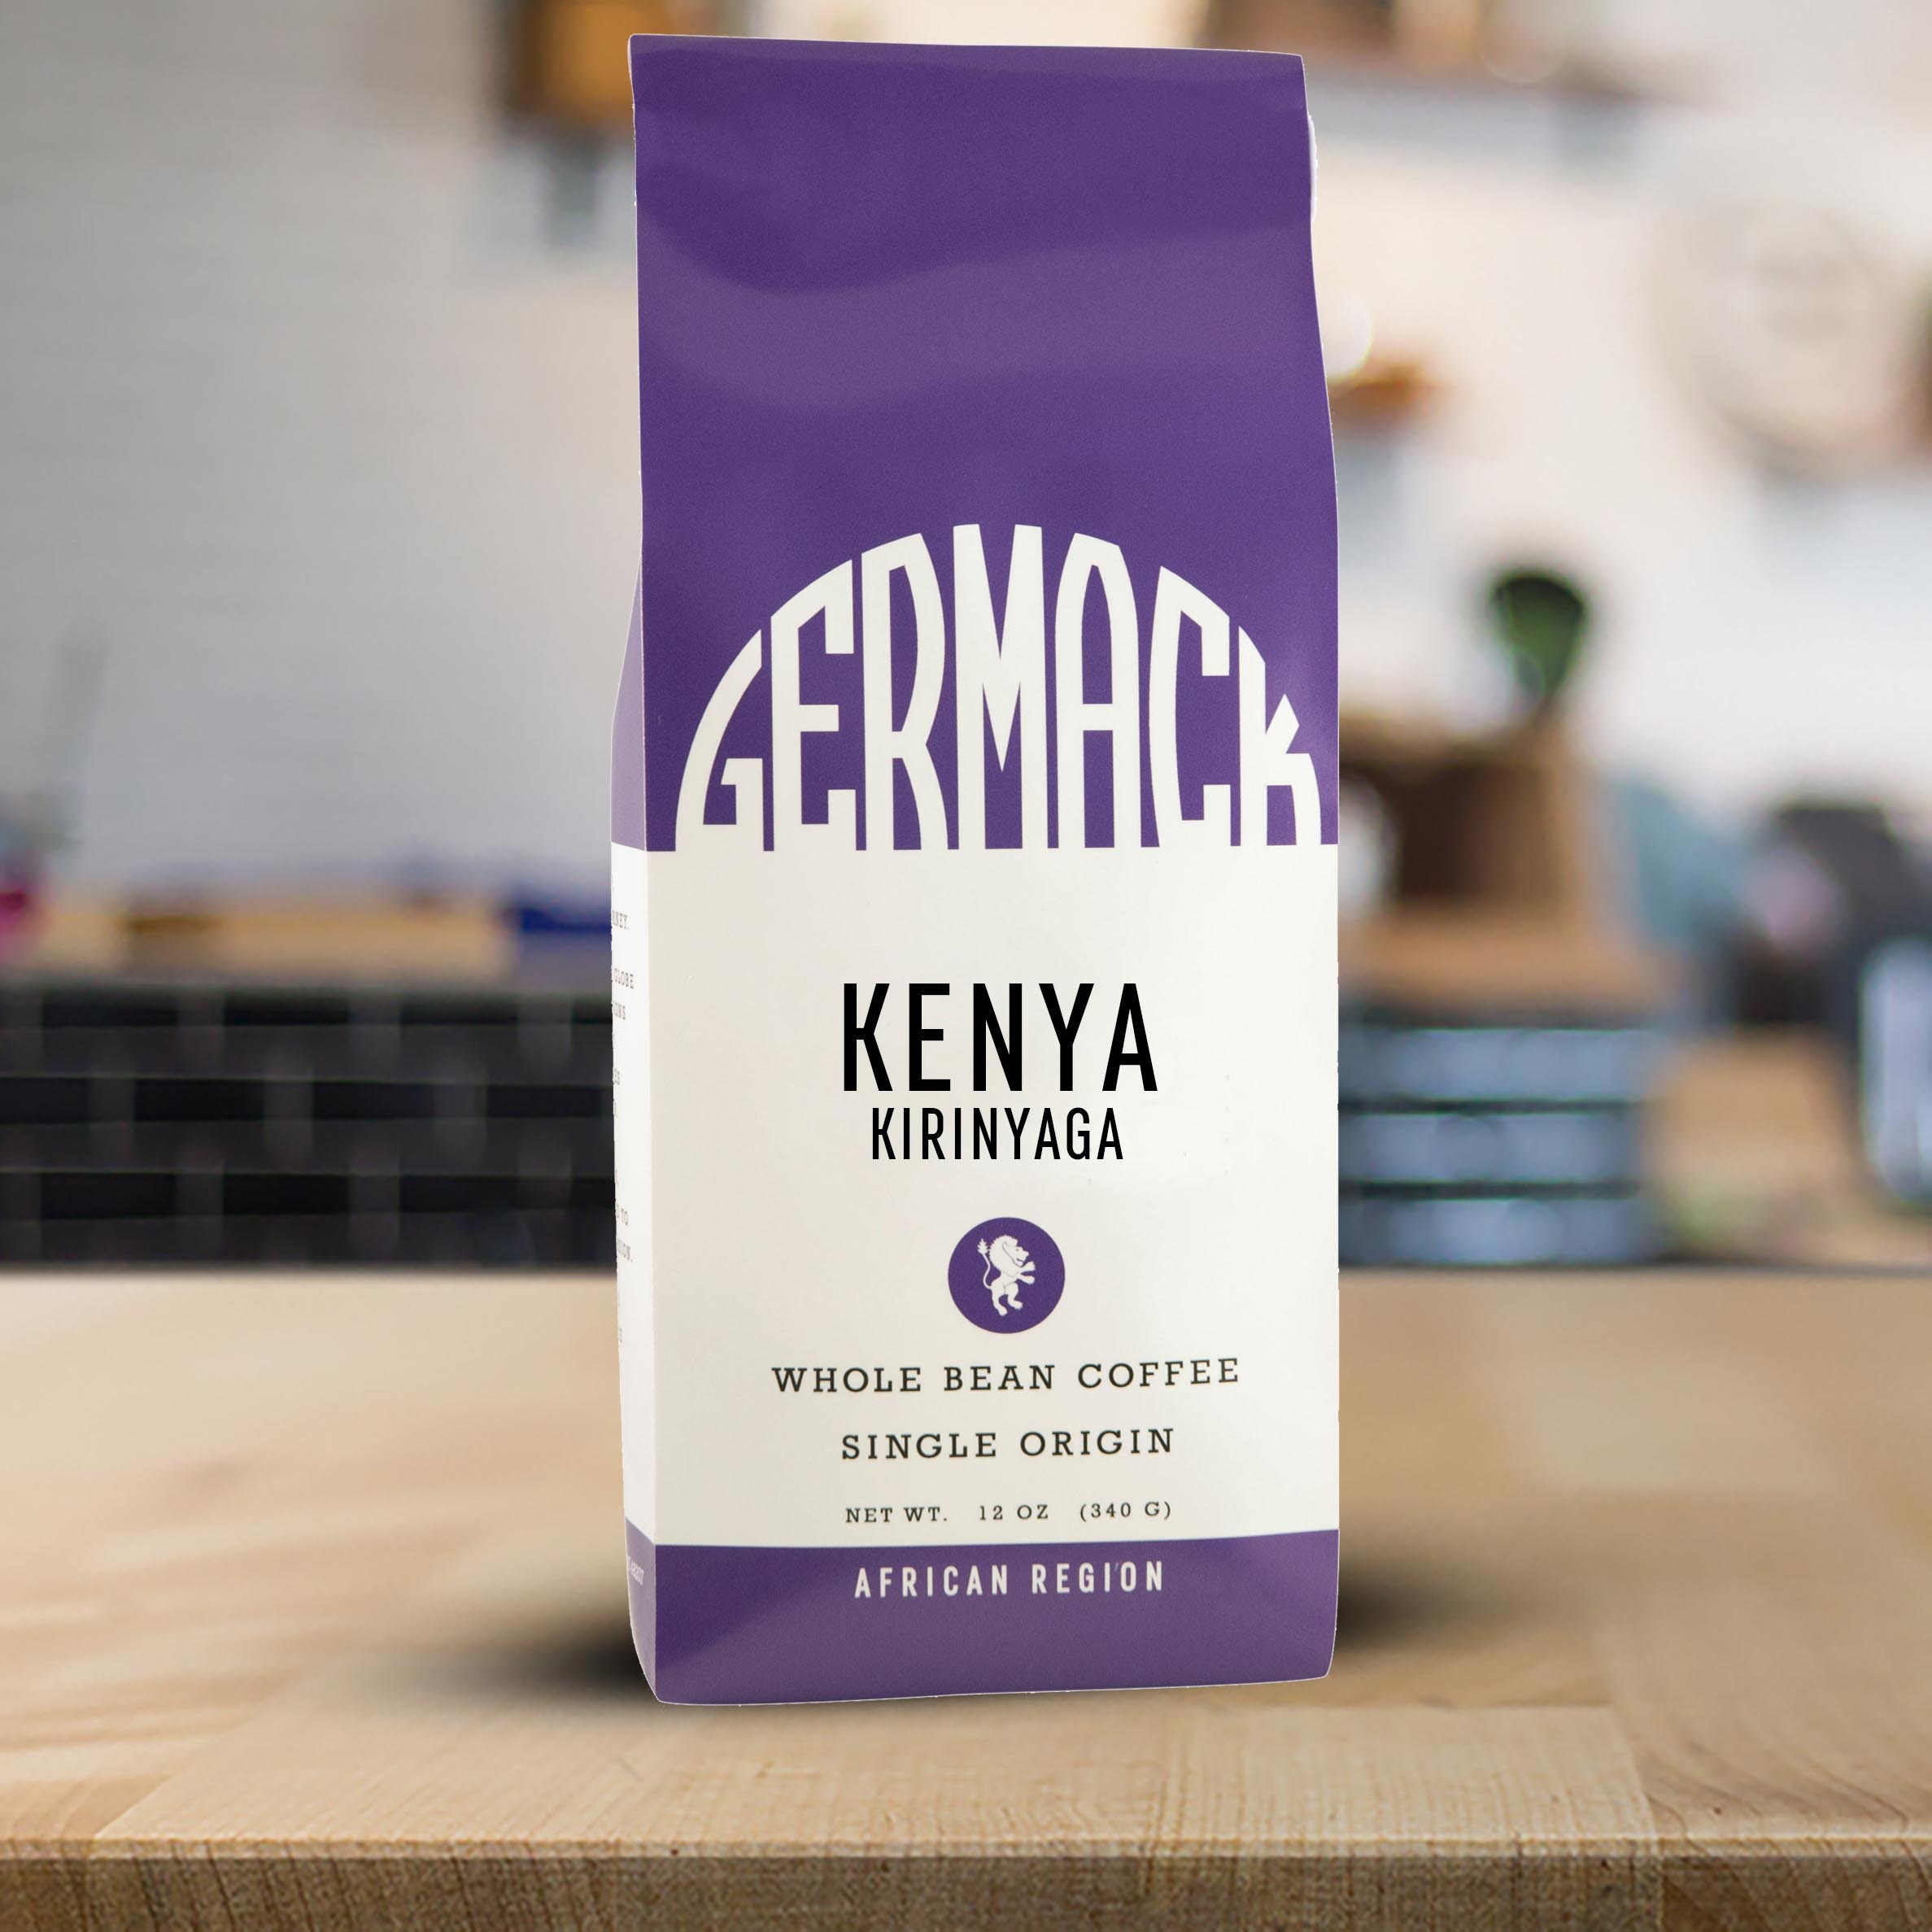 Picture Germack Coffee Kenya Kirinyaga - 5 lb